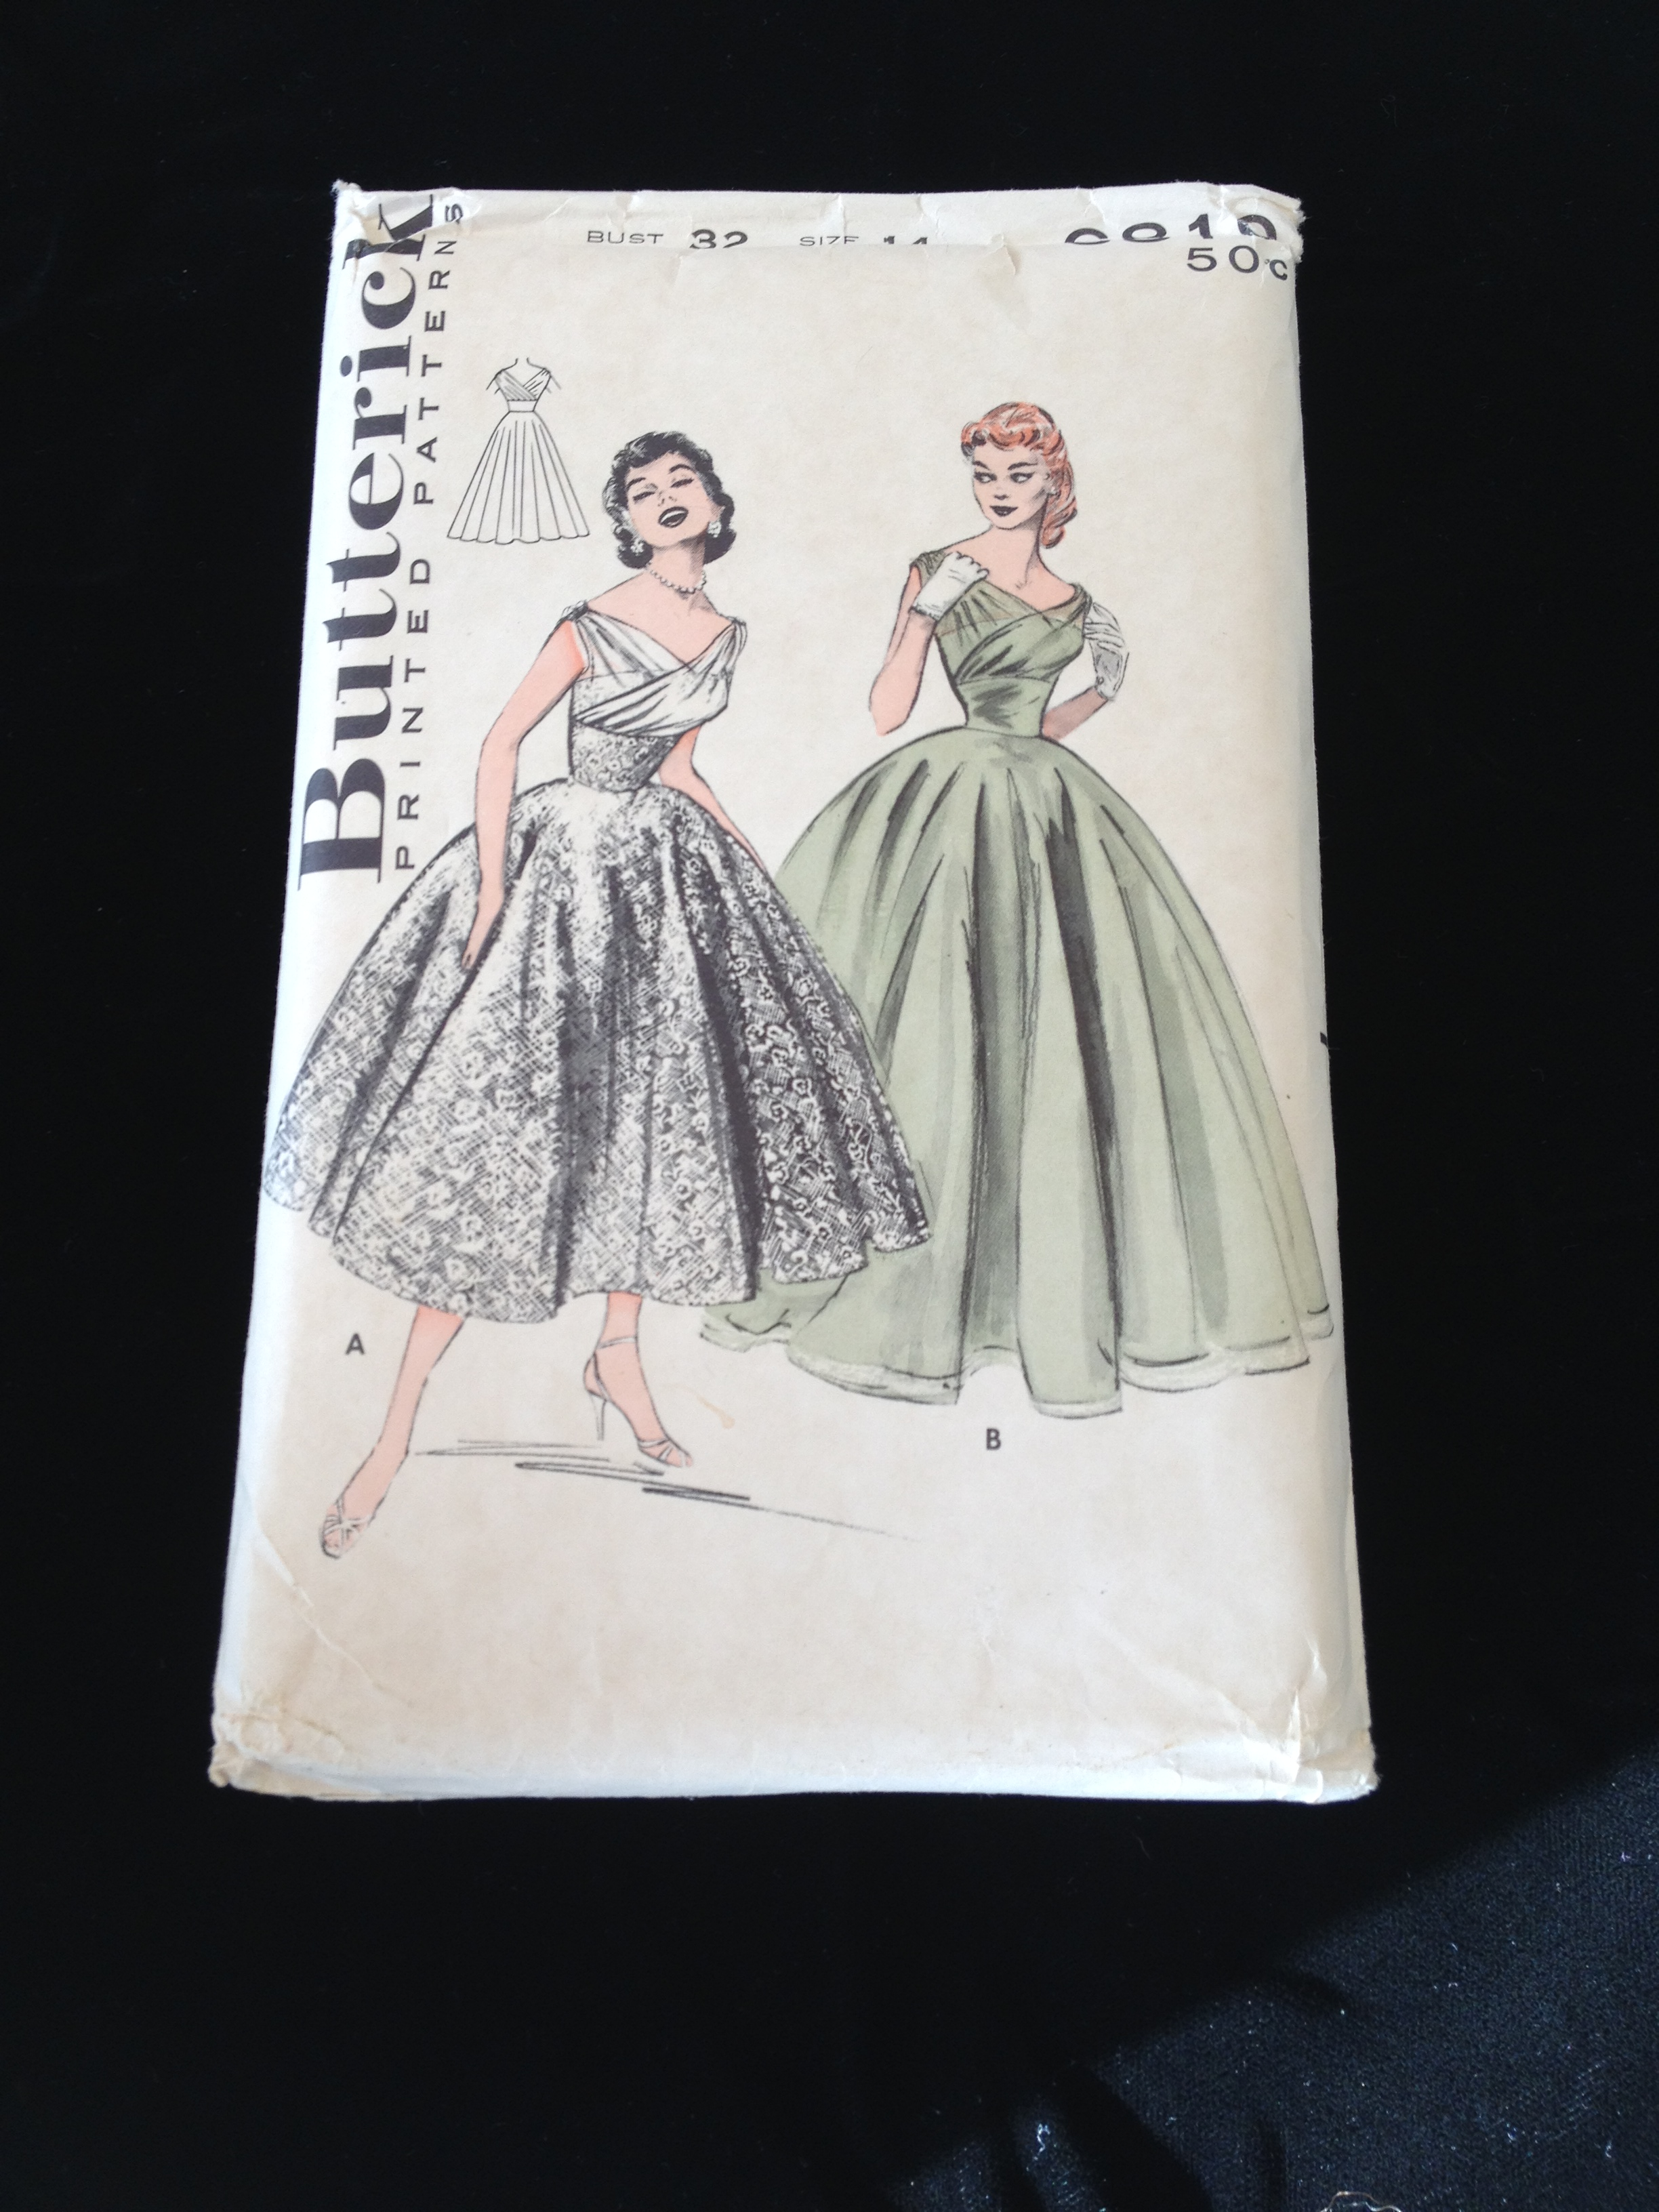 Collecting Vintage Sewing Patterns | musingsfromasewandsew